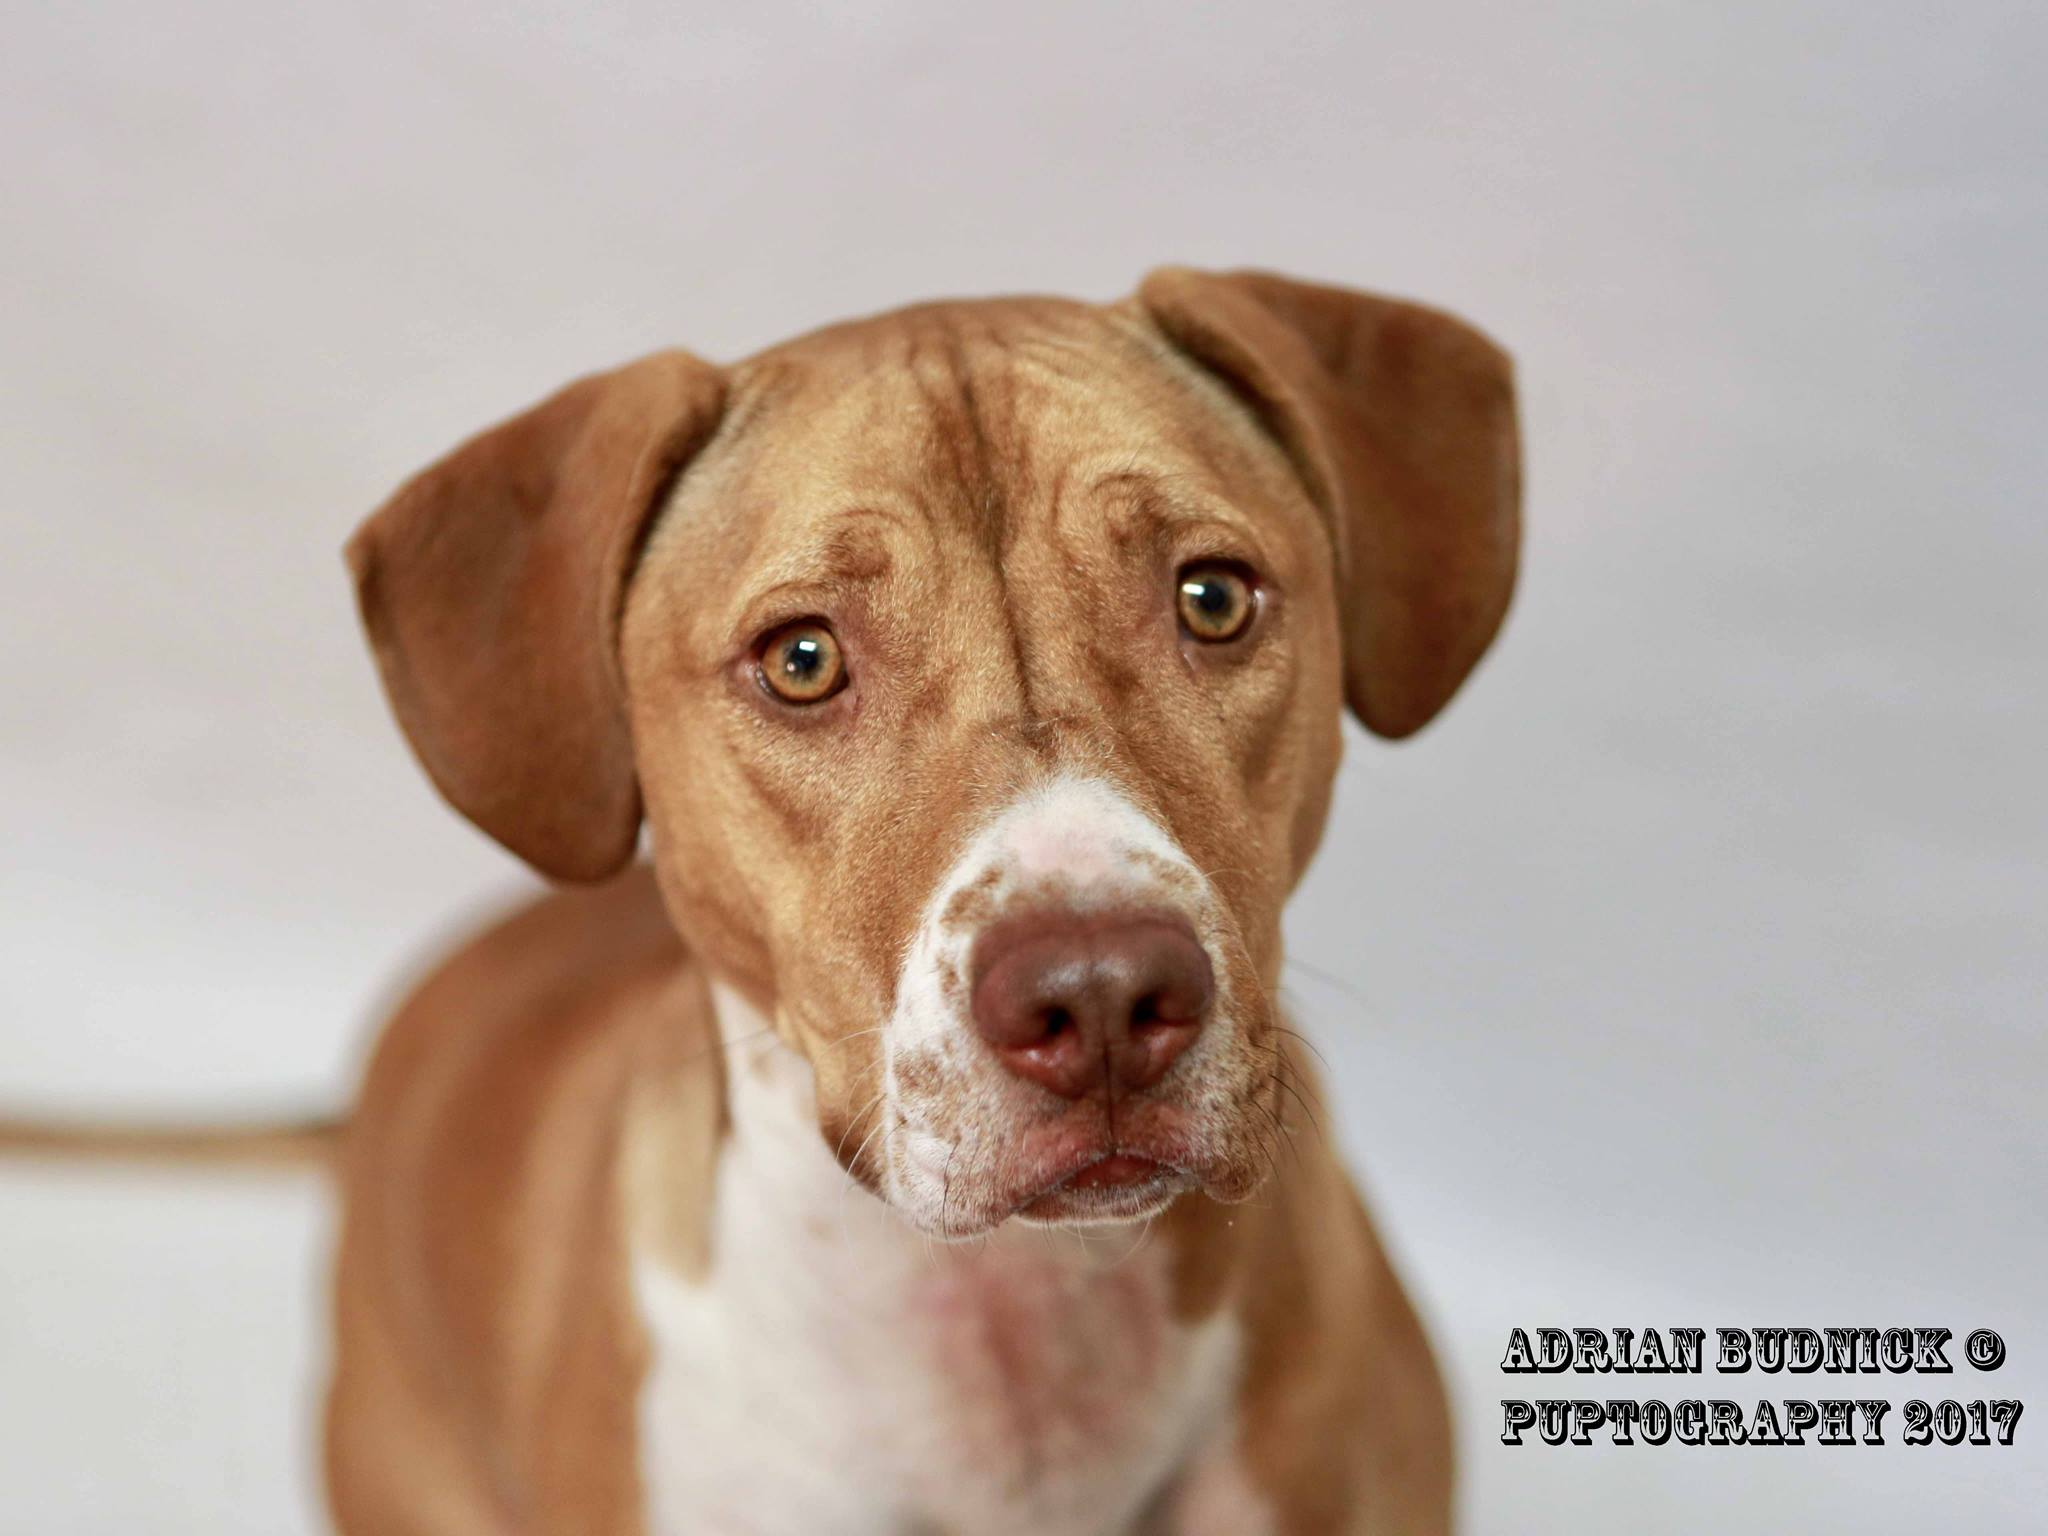 Georgia A136882 is a 1 year old pit bull. She is available at Metro Nashville Animal Care and Control